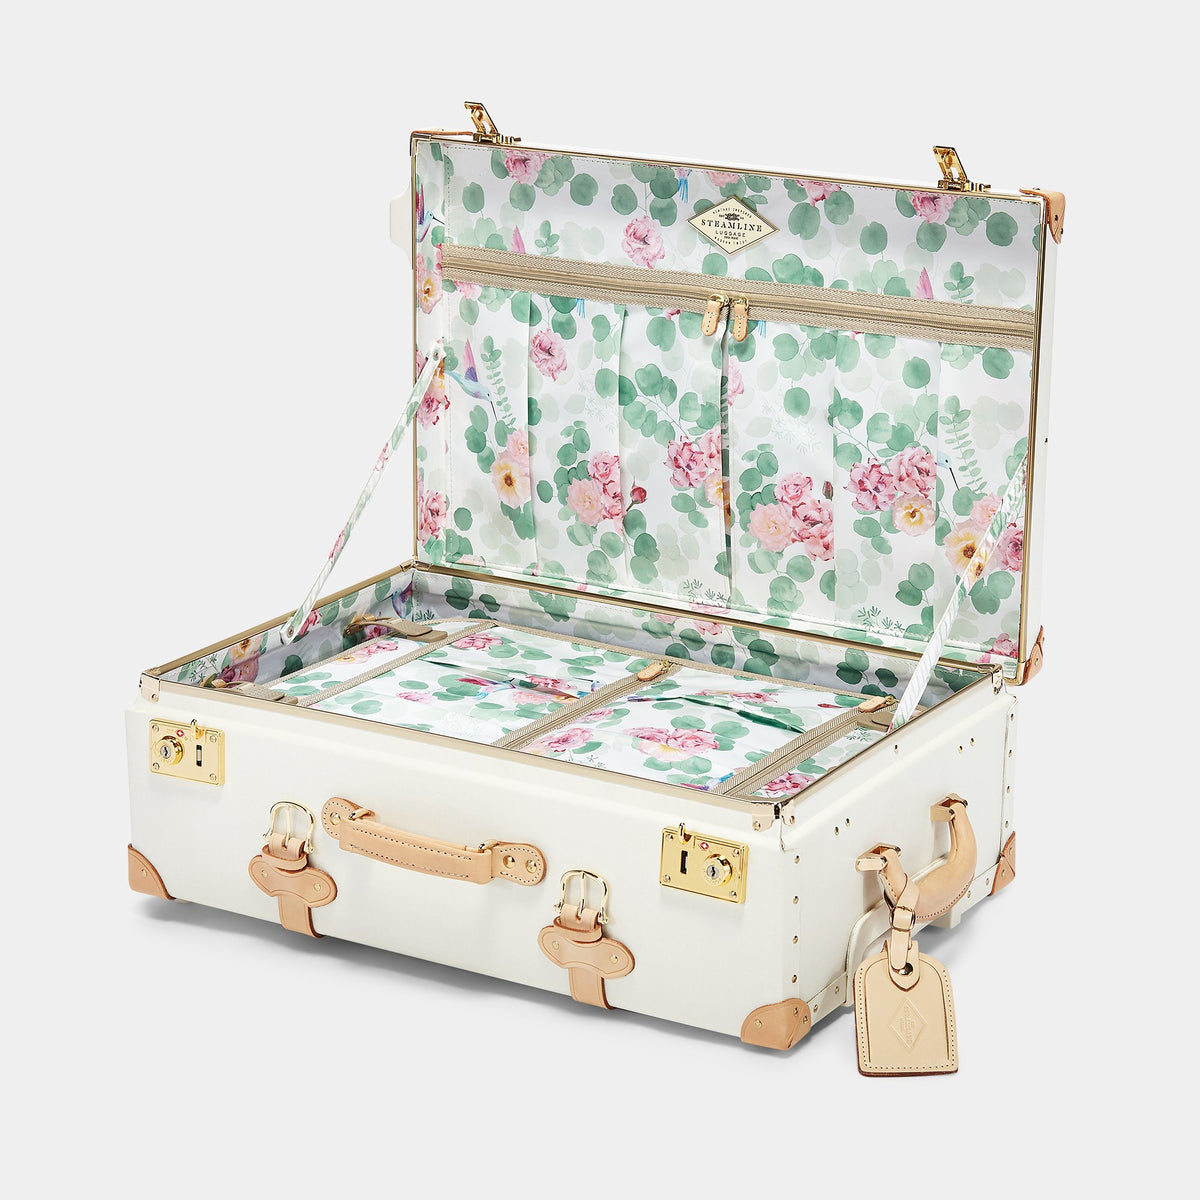 The Sweetheart Stowaway - Vintage-Inspired Luggage - Interior Front